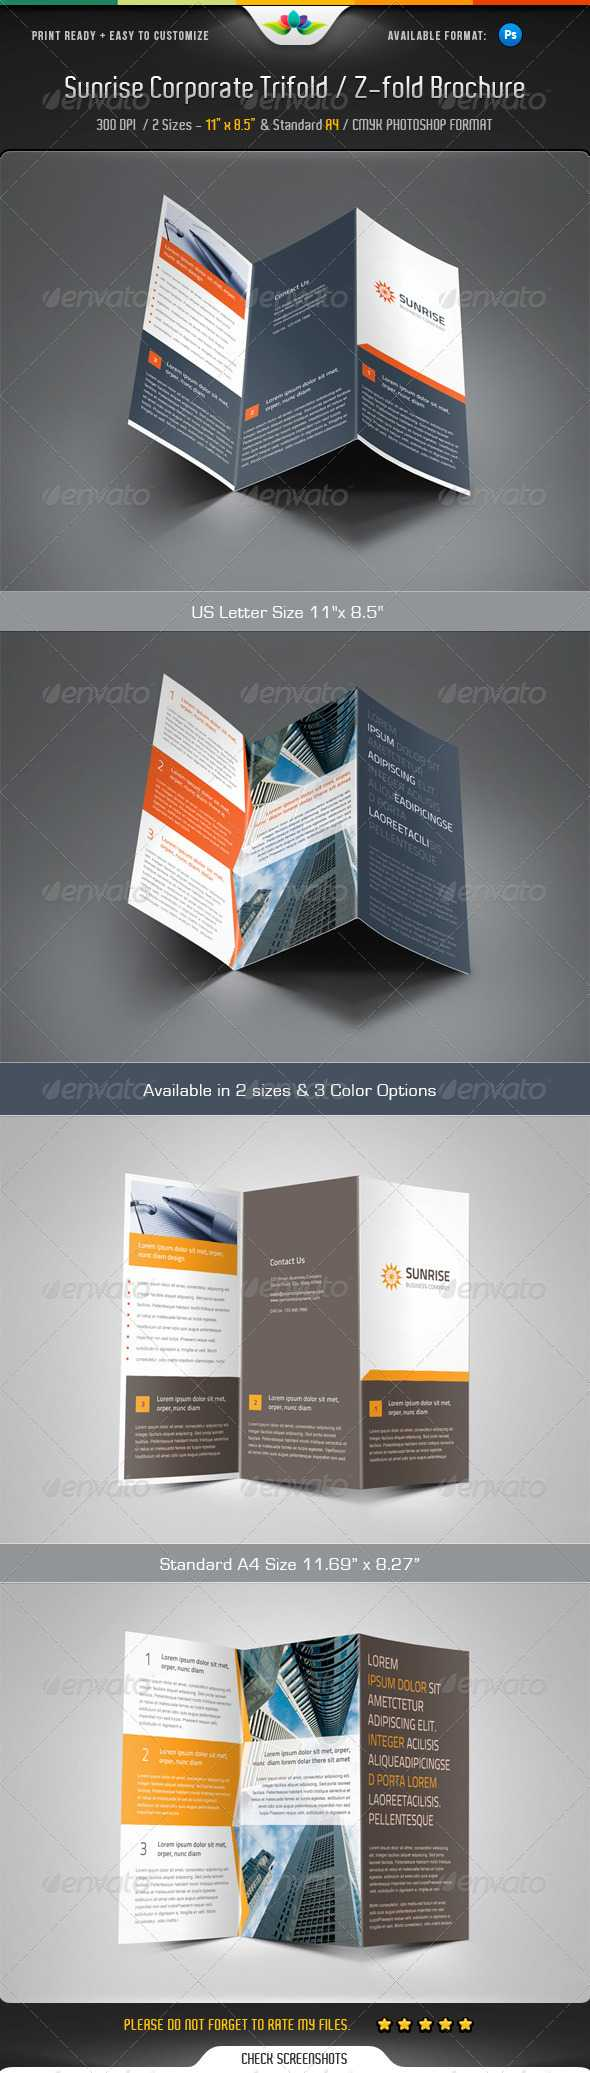 Z Fold Brochure Templates From Graphicriver Pertaining To Z Fold Brochure Template Indesign